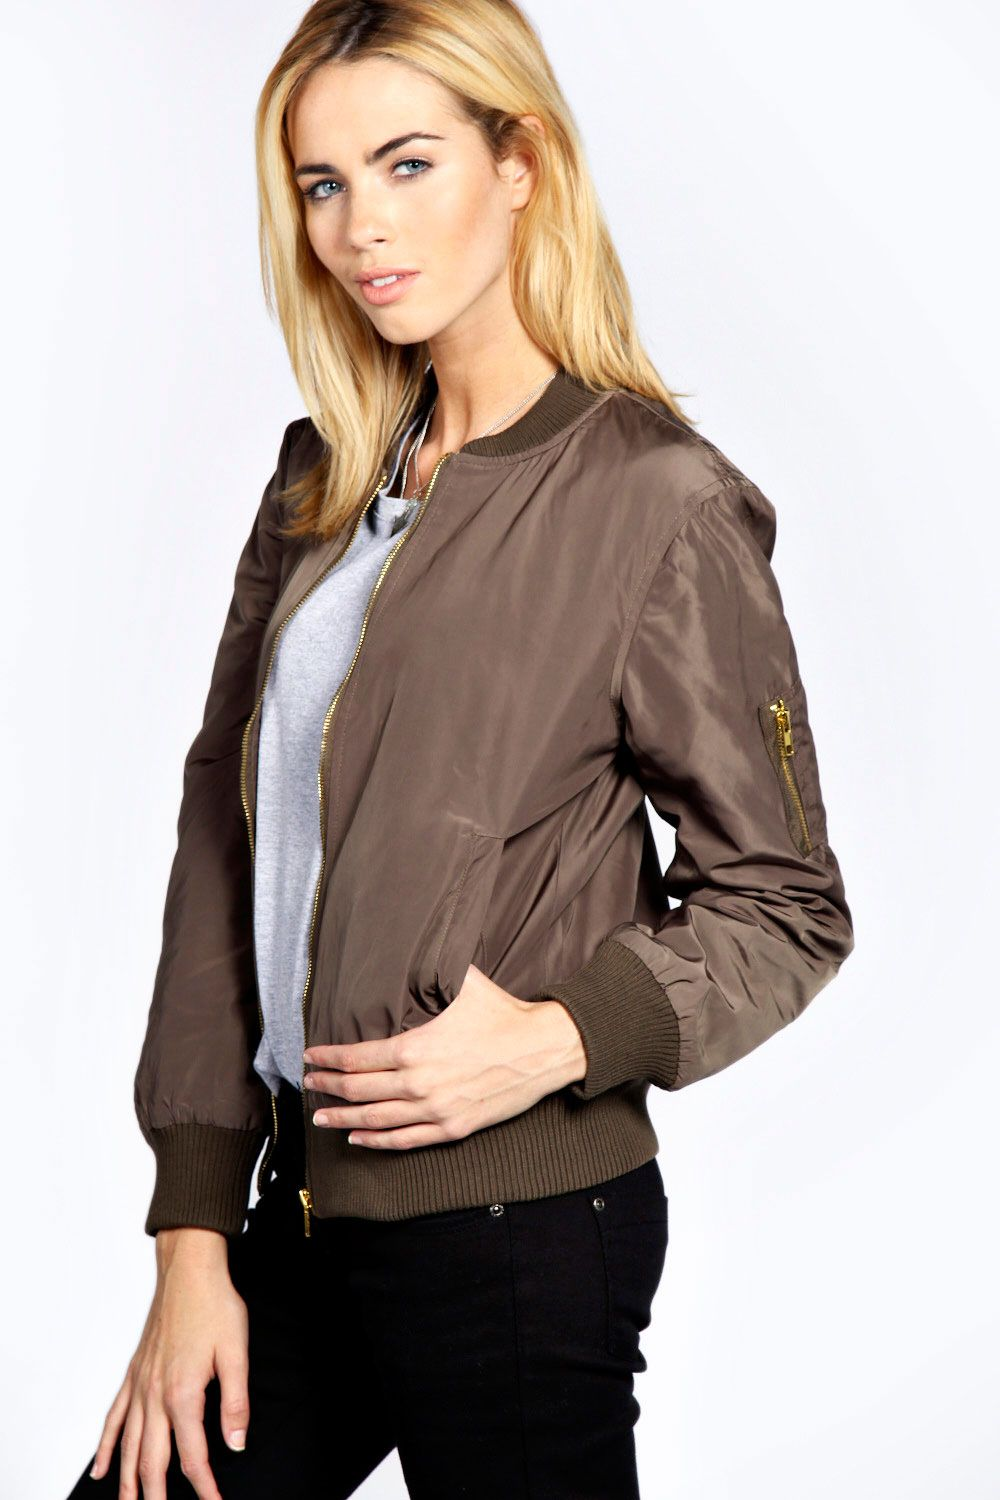 Madison MA1 Bomber Jacket at Bomber jacket